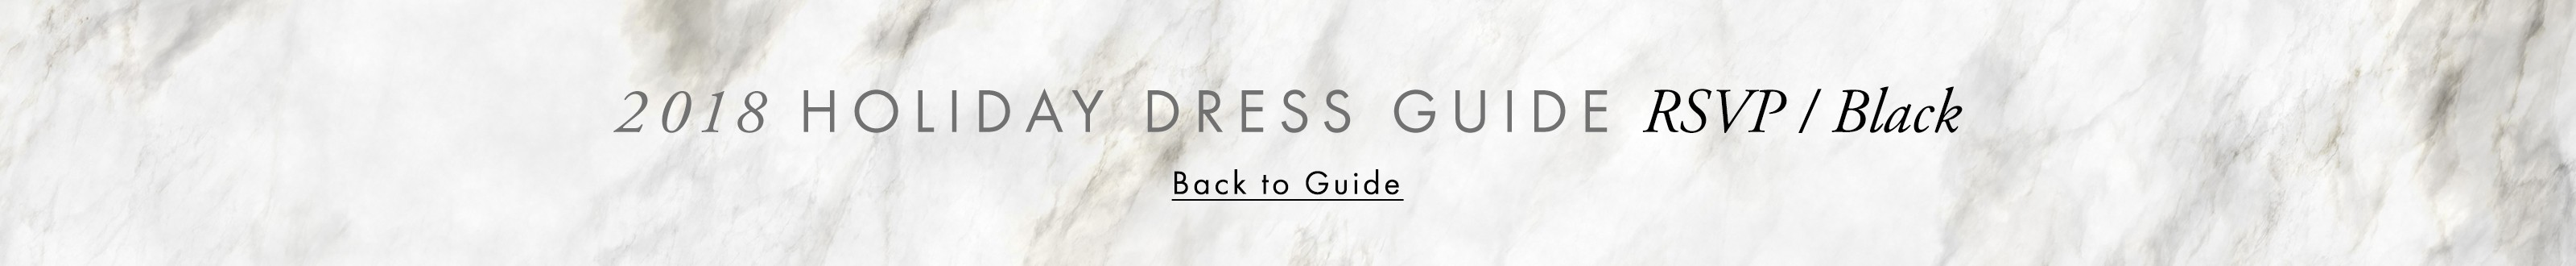 2018 Holiday Dress Guide